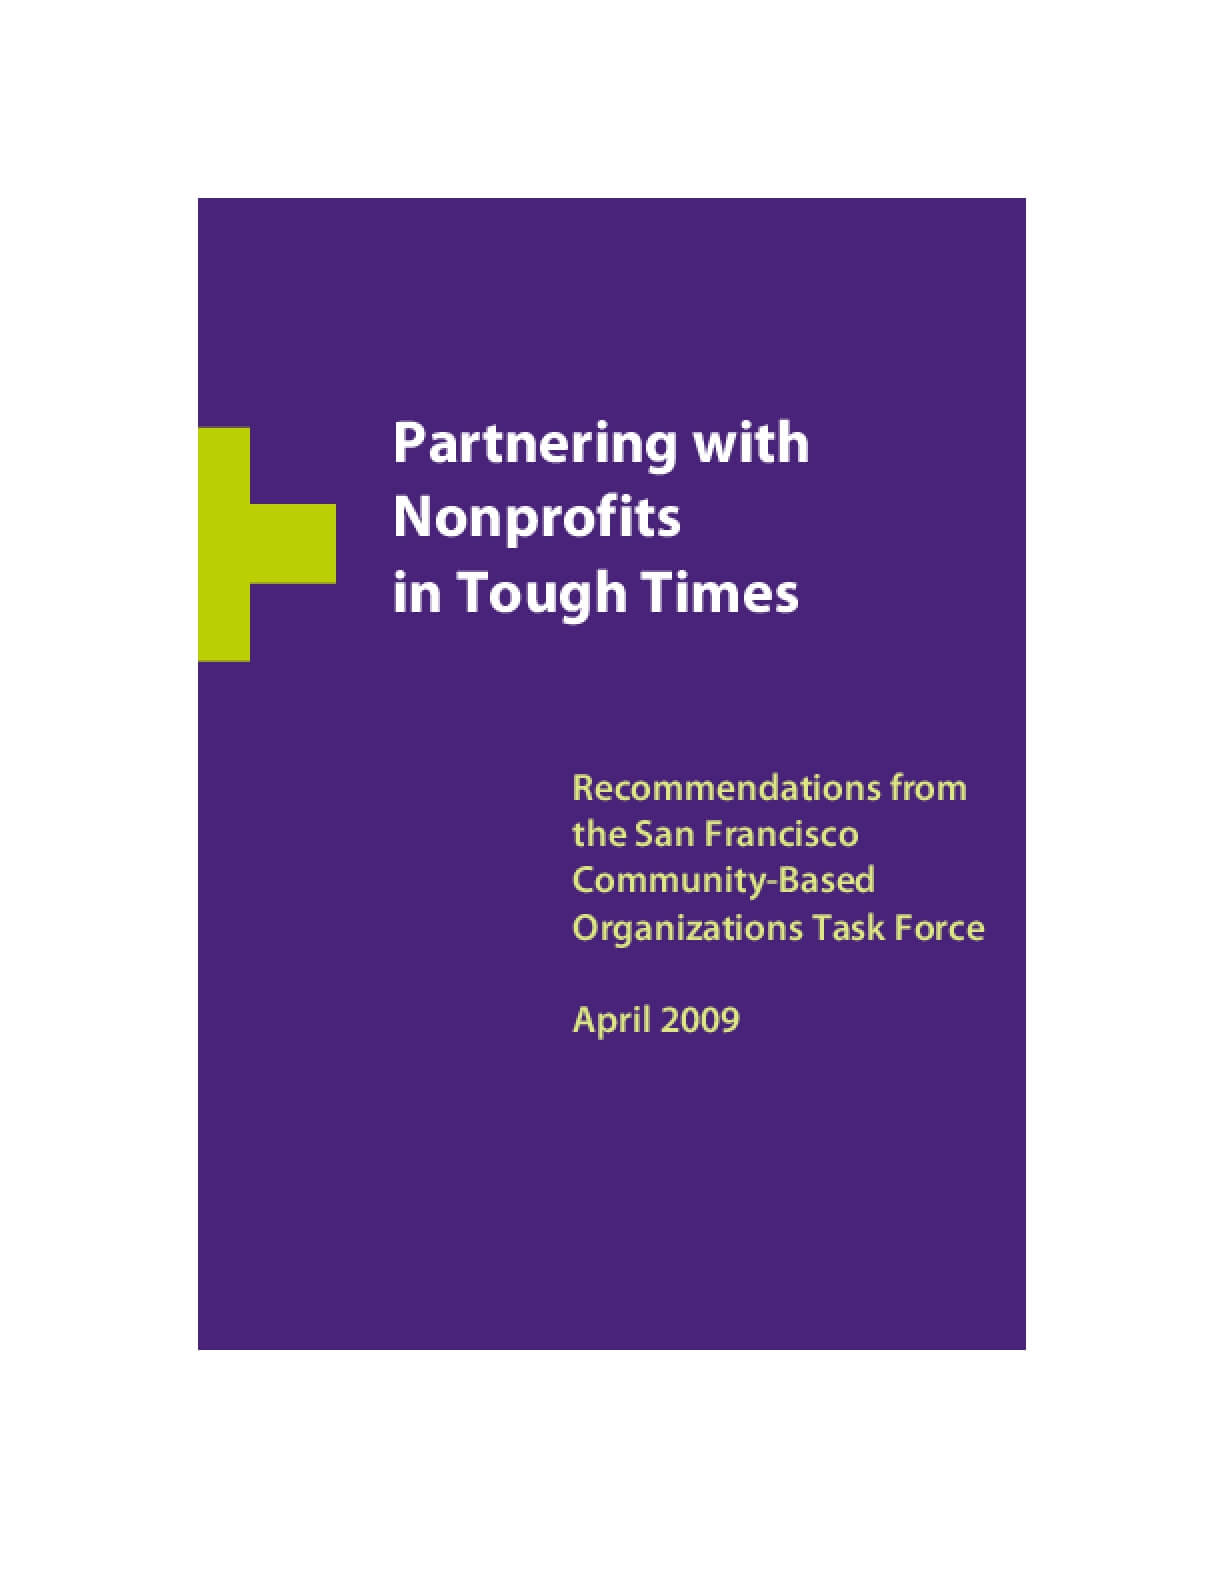 Partnering With Nonprofits in Tough Times: Recommendations from the San Francisco Community-Based Organizations Task Force, April 2009